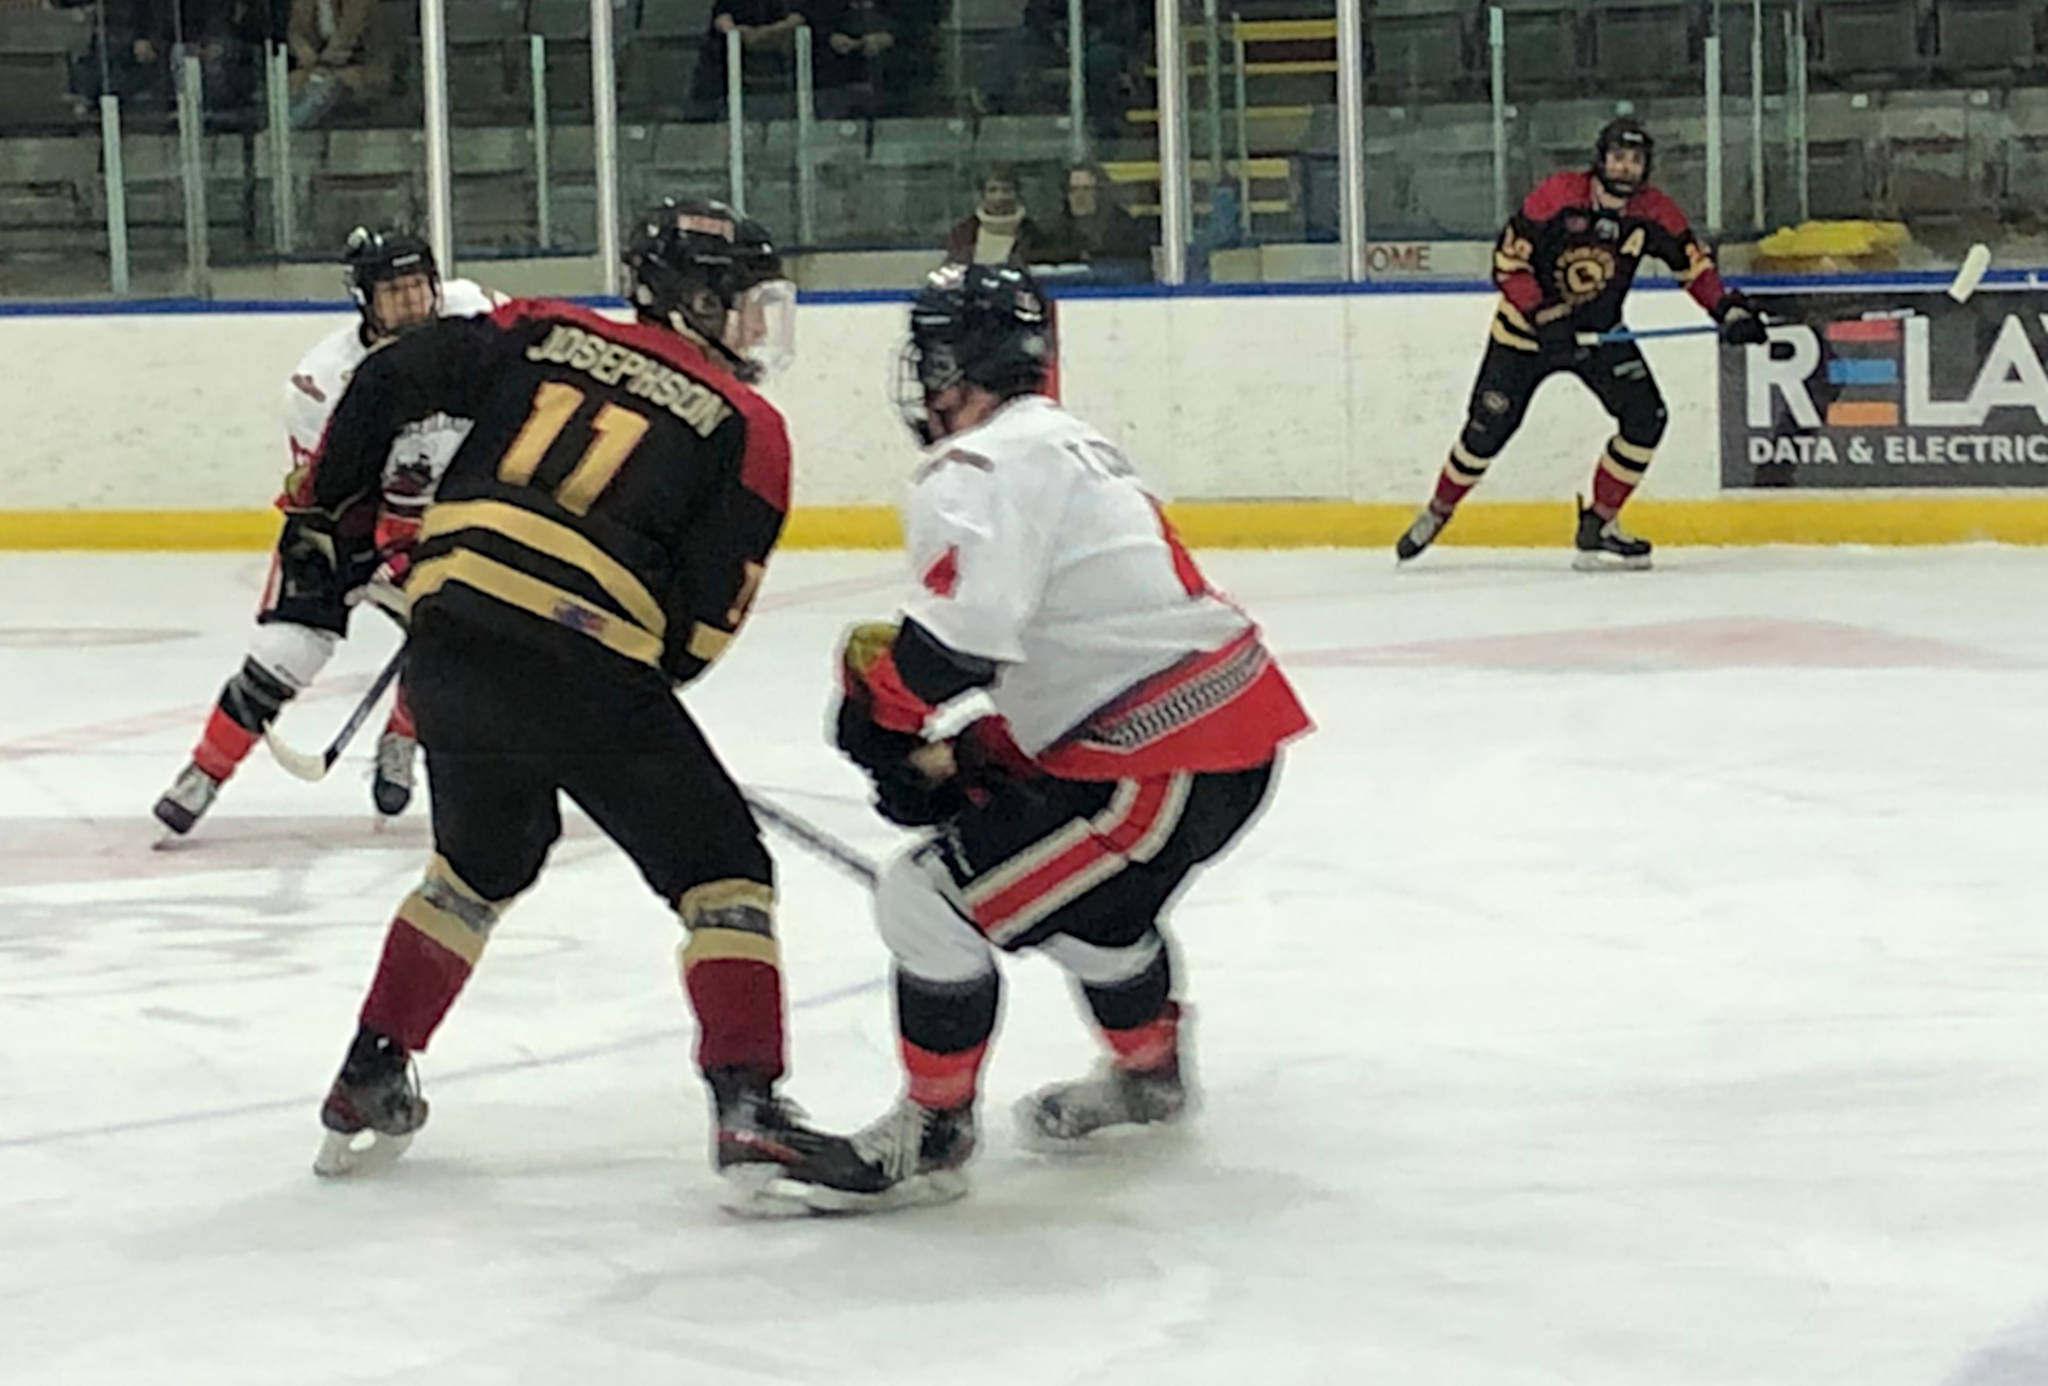 Terrance Josephson of the Princeton Posse, at left, and Tyson Conroy of the Summerland Steam clash during a Junior B hockey game at the Summerland Arena in the early spring of 2020. (John Arendt - Summerland Review)